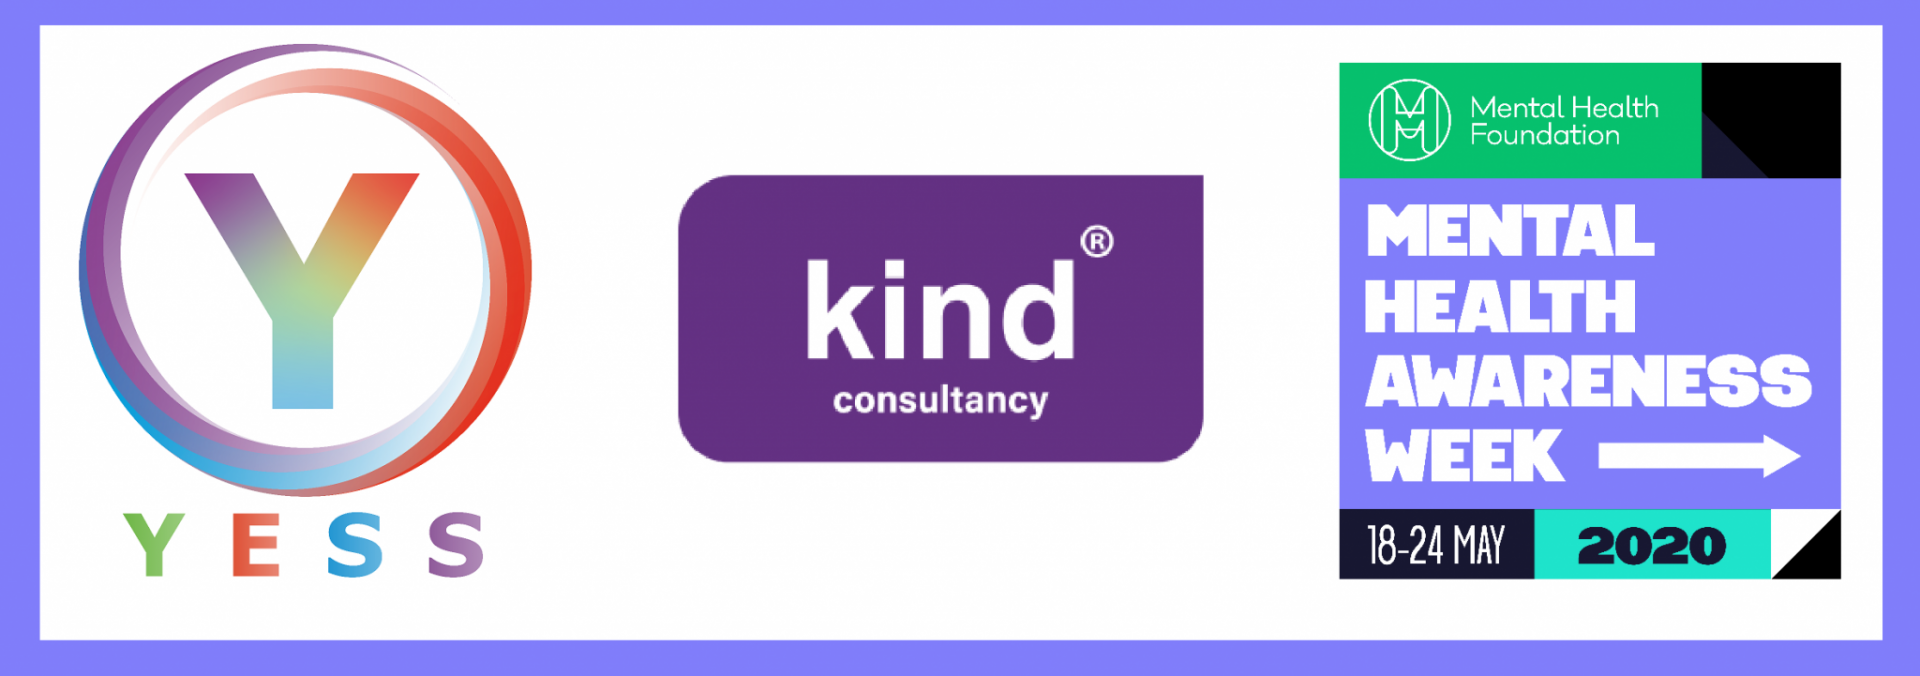 Support YESS with Kind Consultancy as part of Mental Health Awareness Week